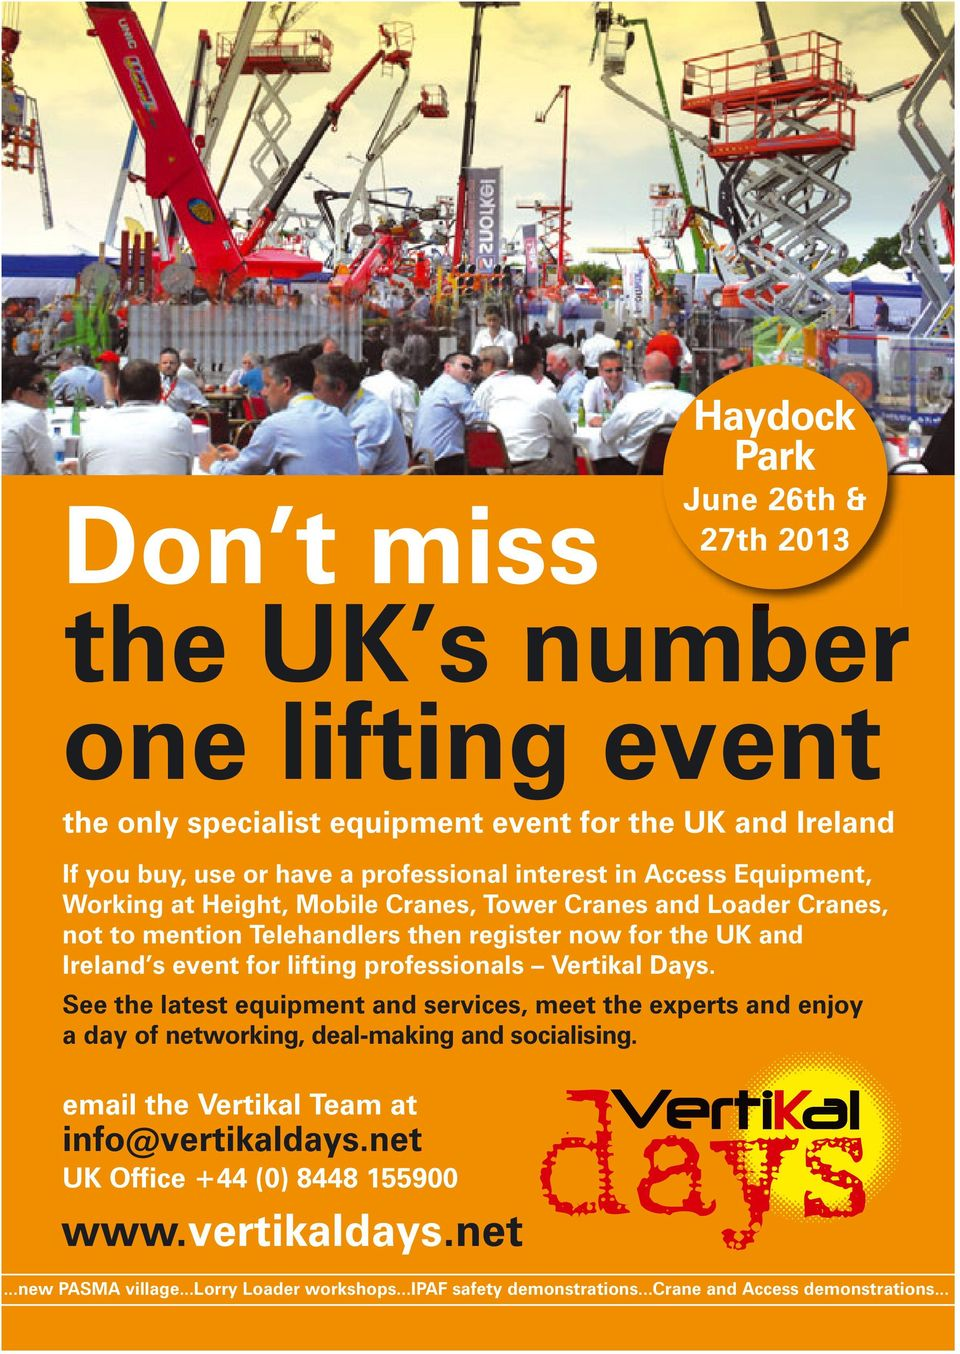 lifting professionals Vertikal Days. See the latest equipment and services, meet the experts and enjoy a day of networking, deal-making and socialising.